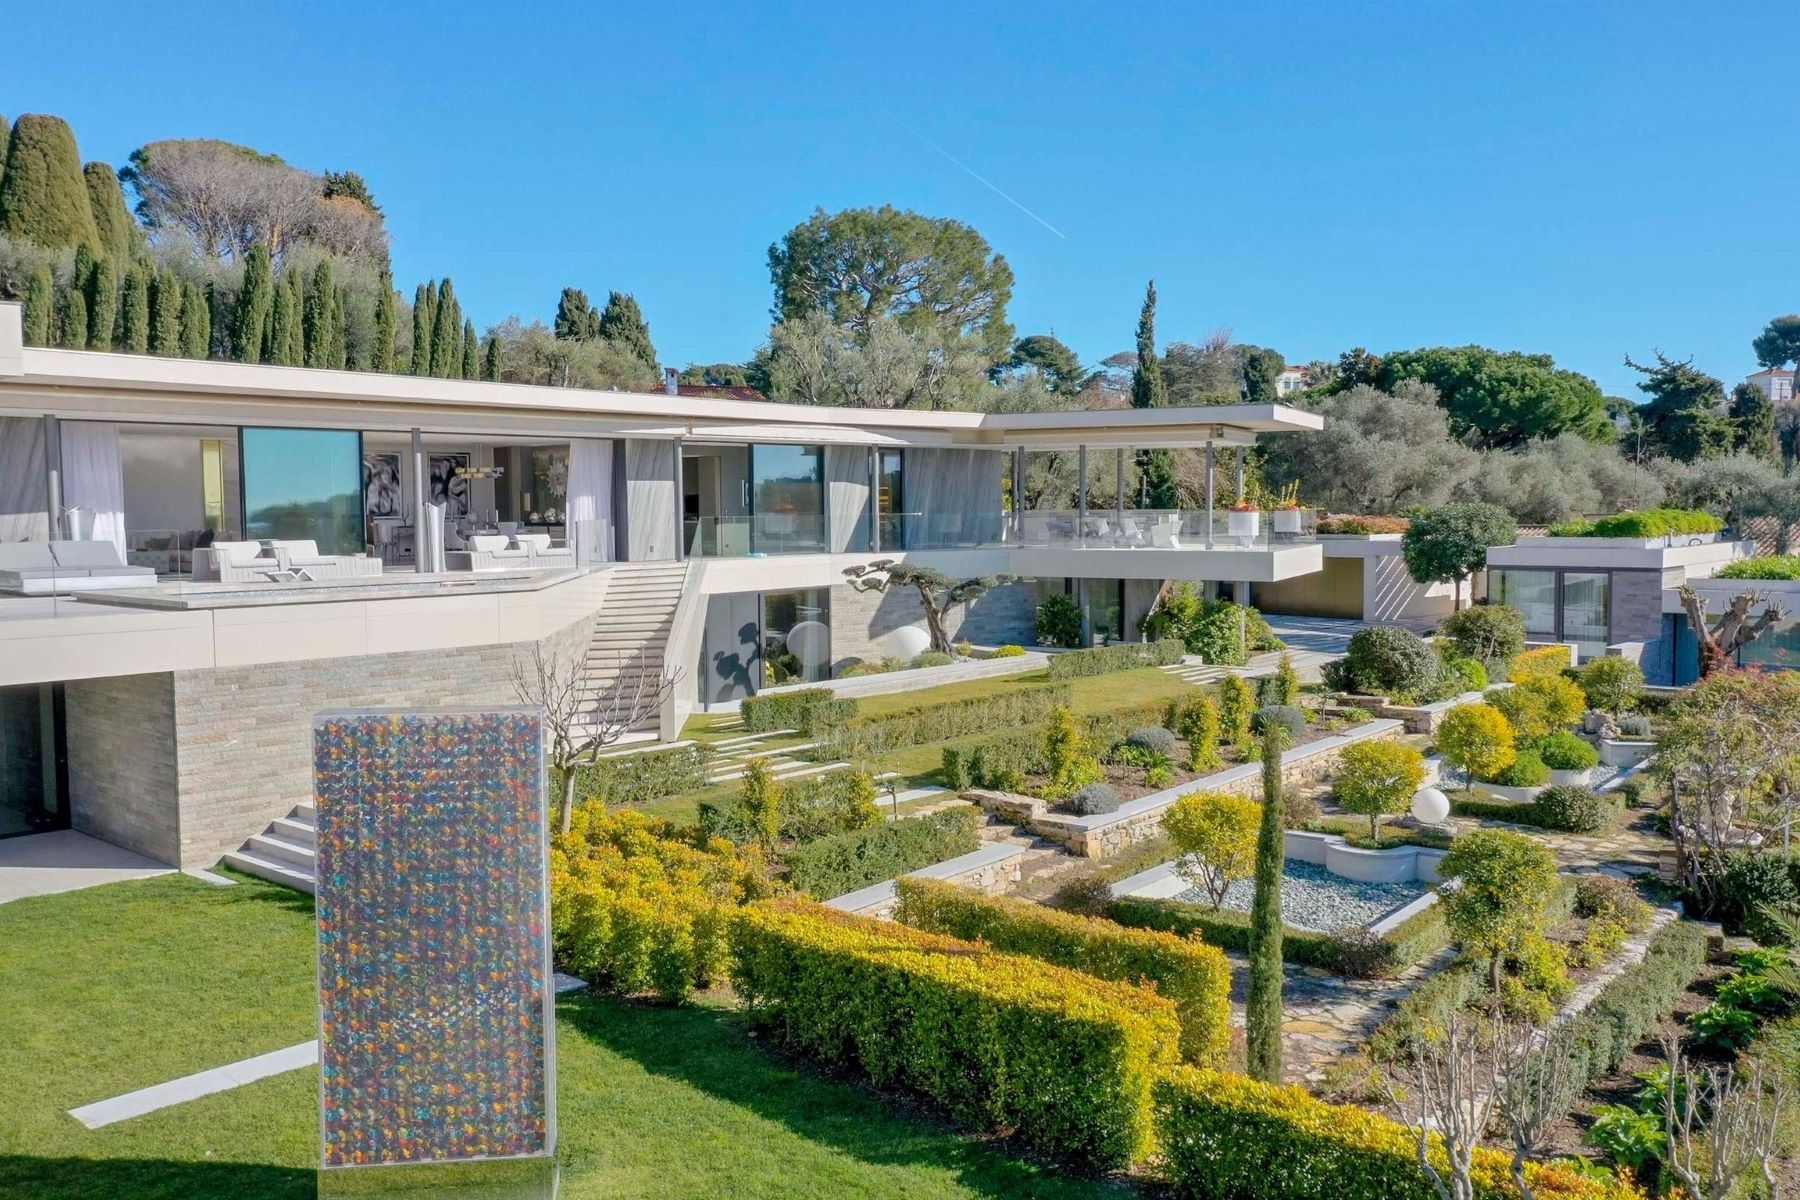 Single Family Home for Sale at For sale in the heart of the Cap D'Antibes a luxurious contemporary villa Cap D'Antibes, Provence-Alpes-Cote D'Azur 06160 France